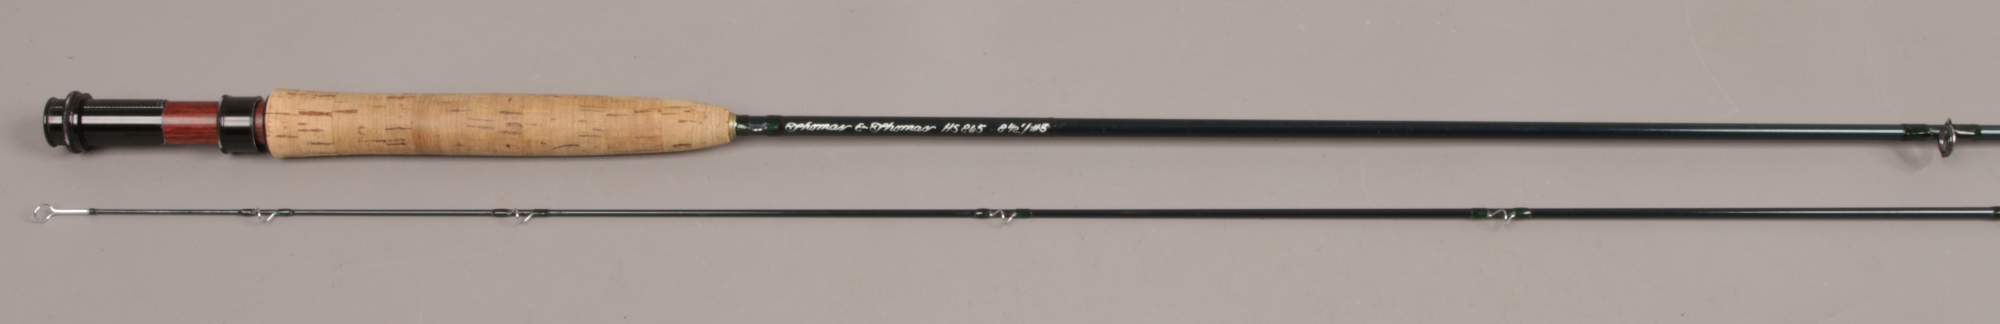 Lot 404 - A Thomas & Thomas two part fly fishing rod HS 81/2 / # 5 with canvas bag and aluminium protective